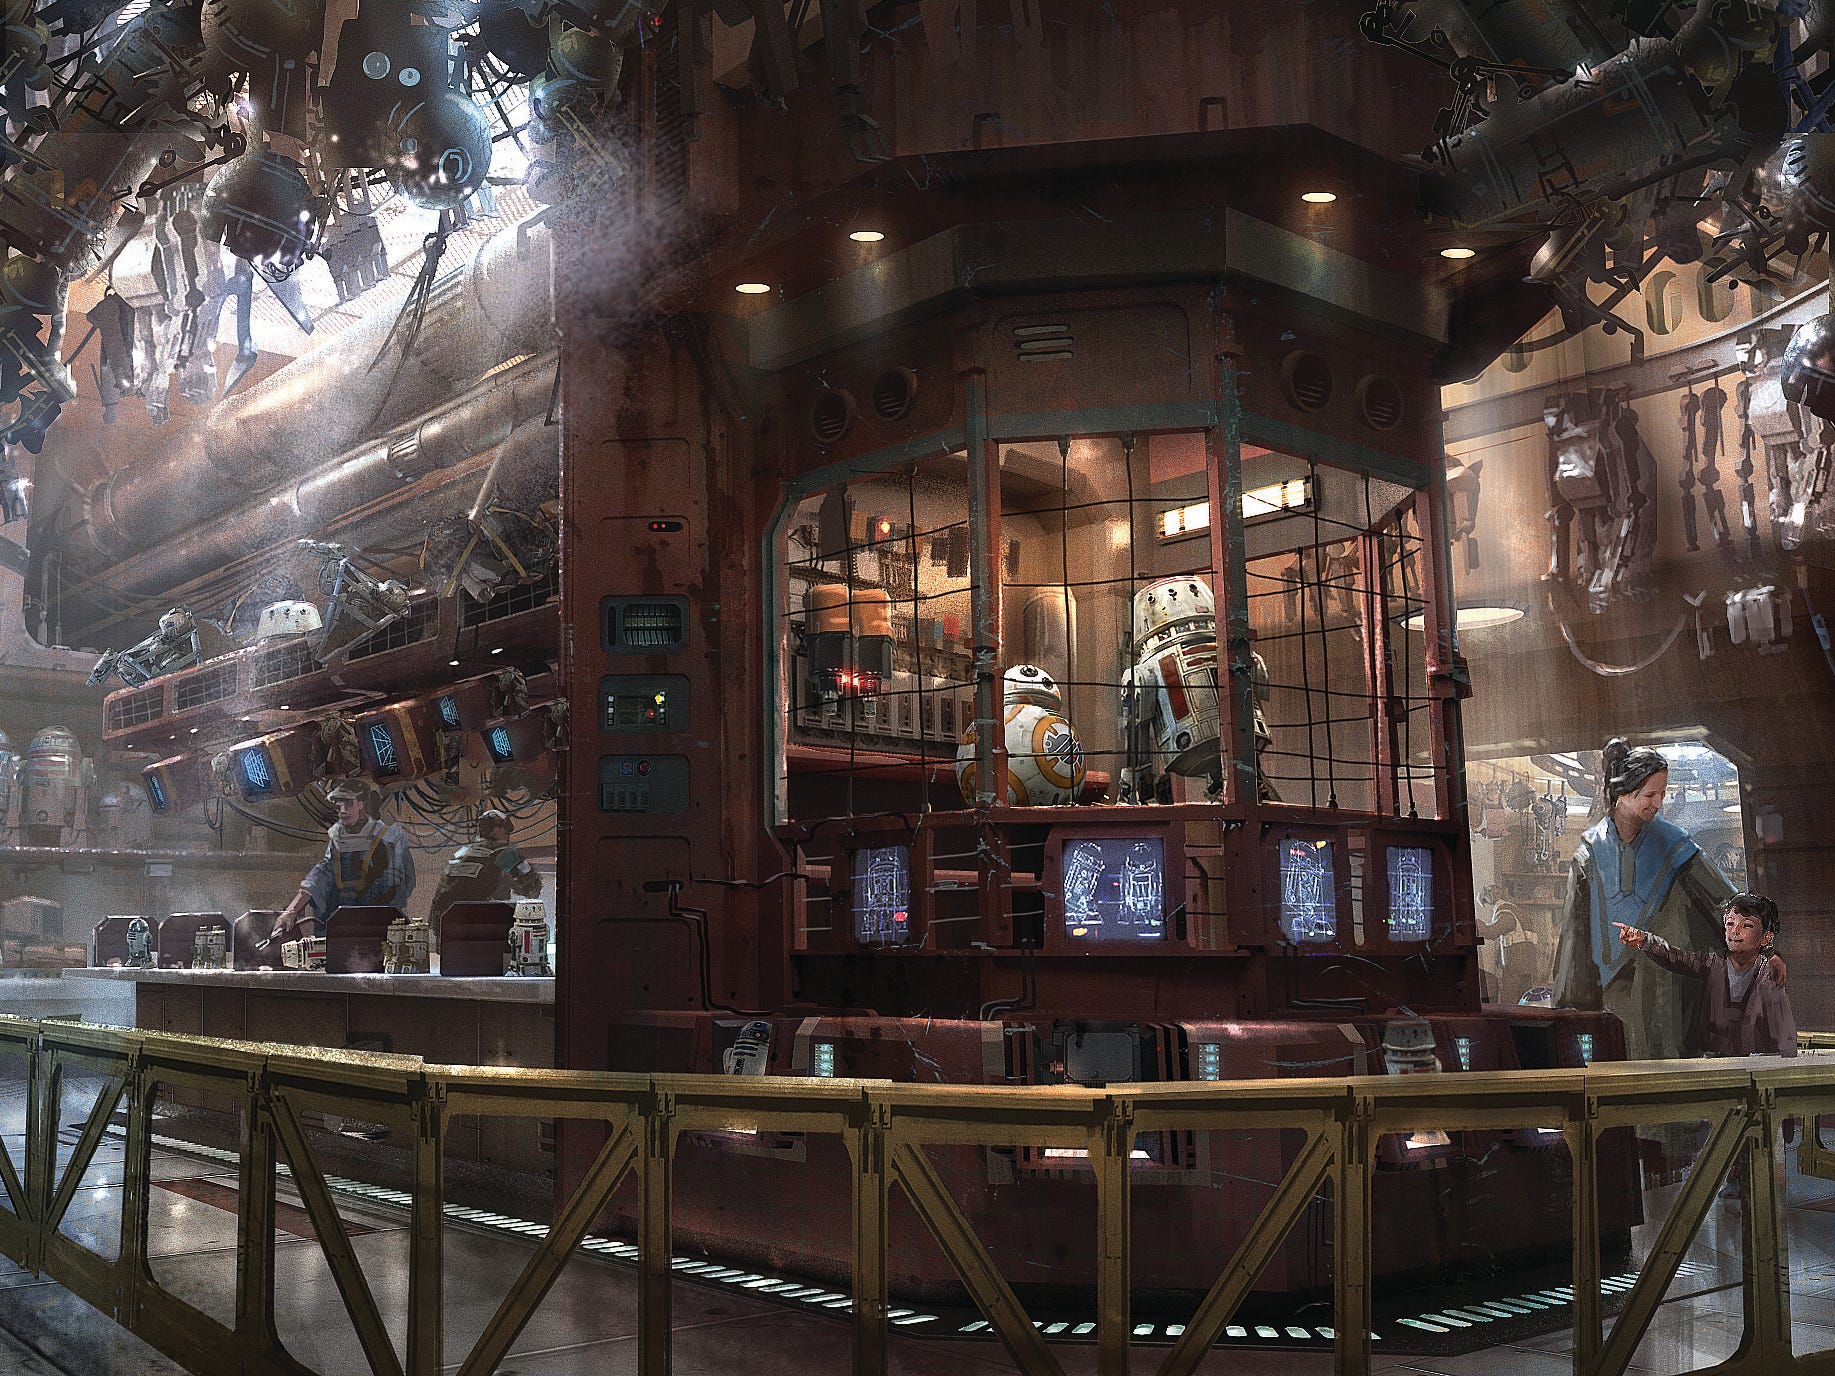 In the Droid Depot at Star Wars: Galaxy's Edge, guests will be able to build their own personal droids.